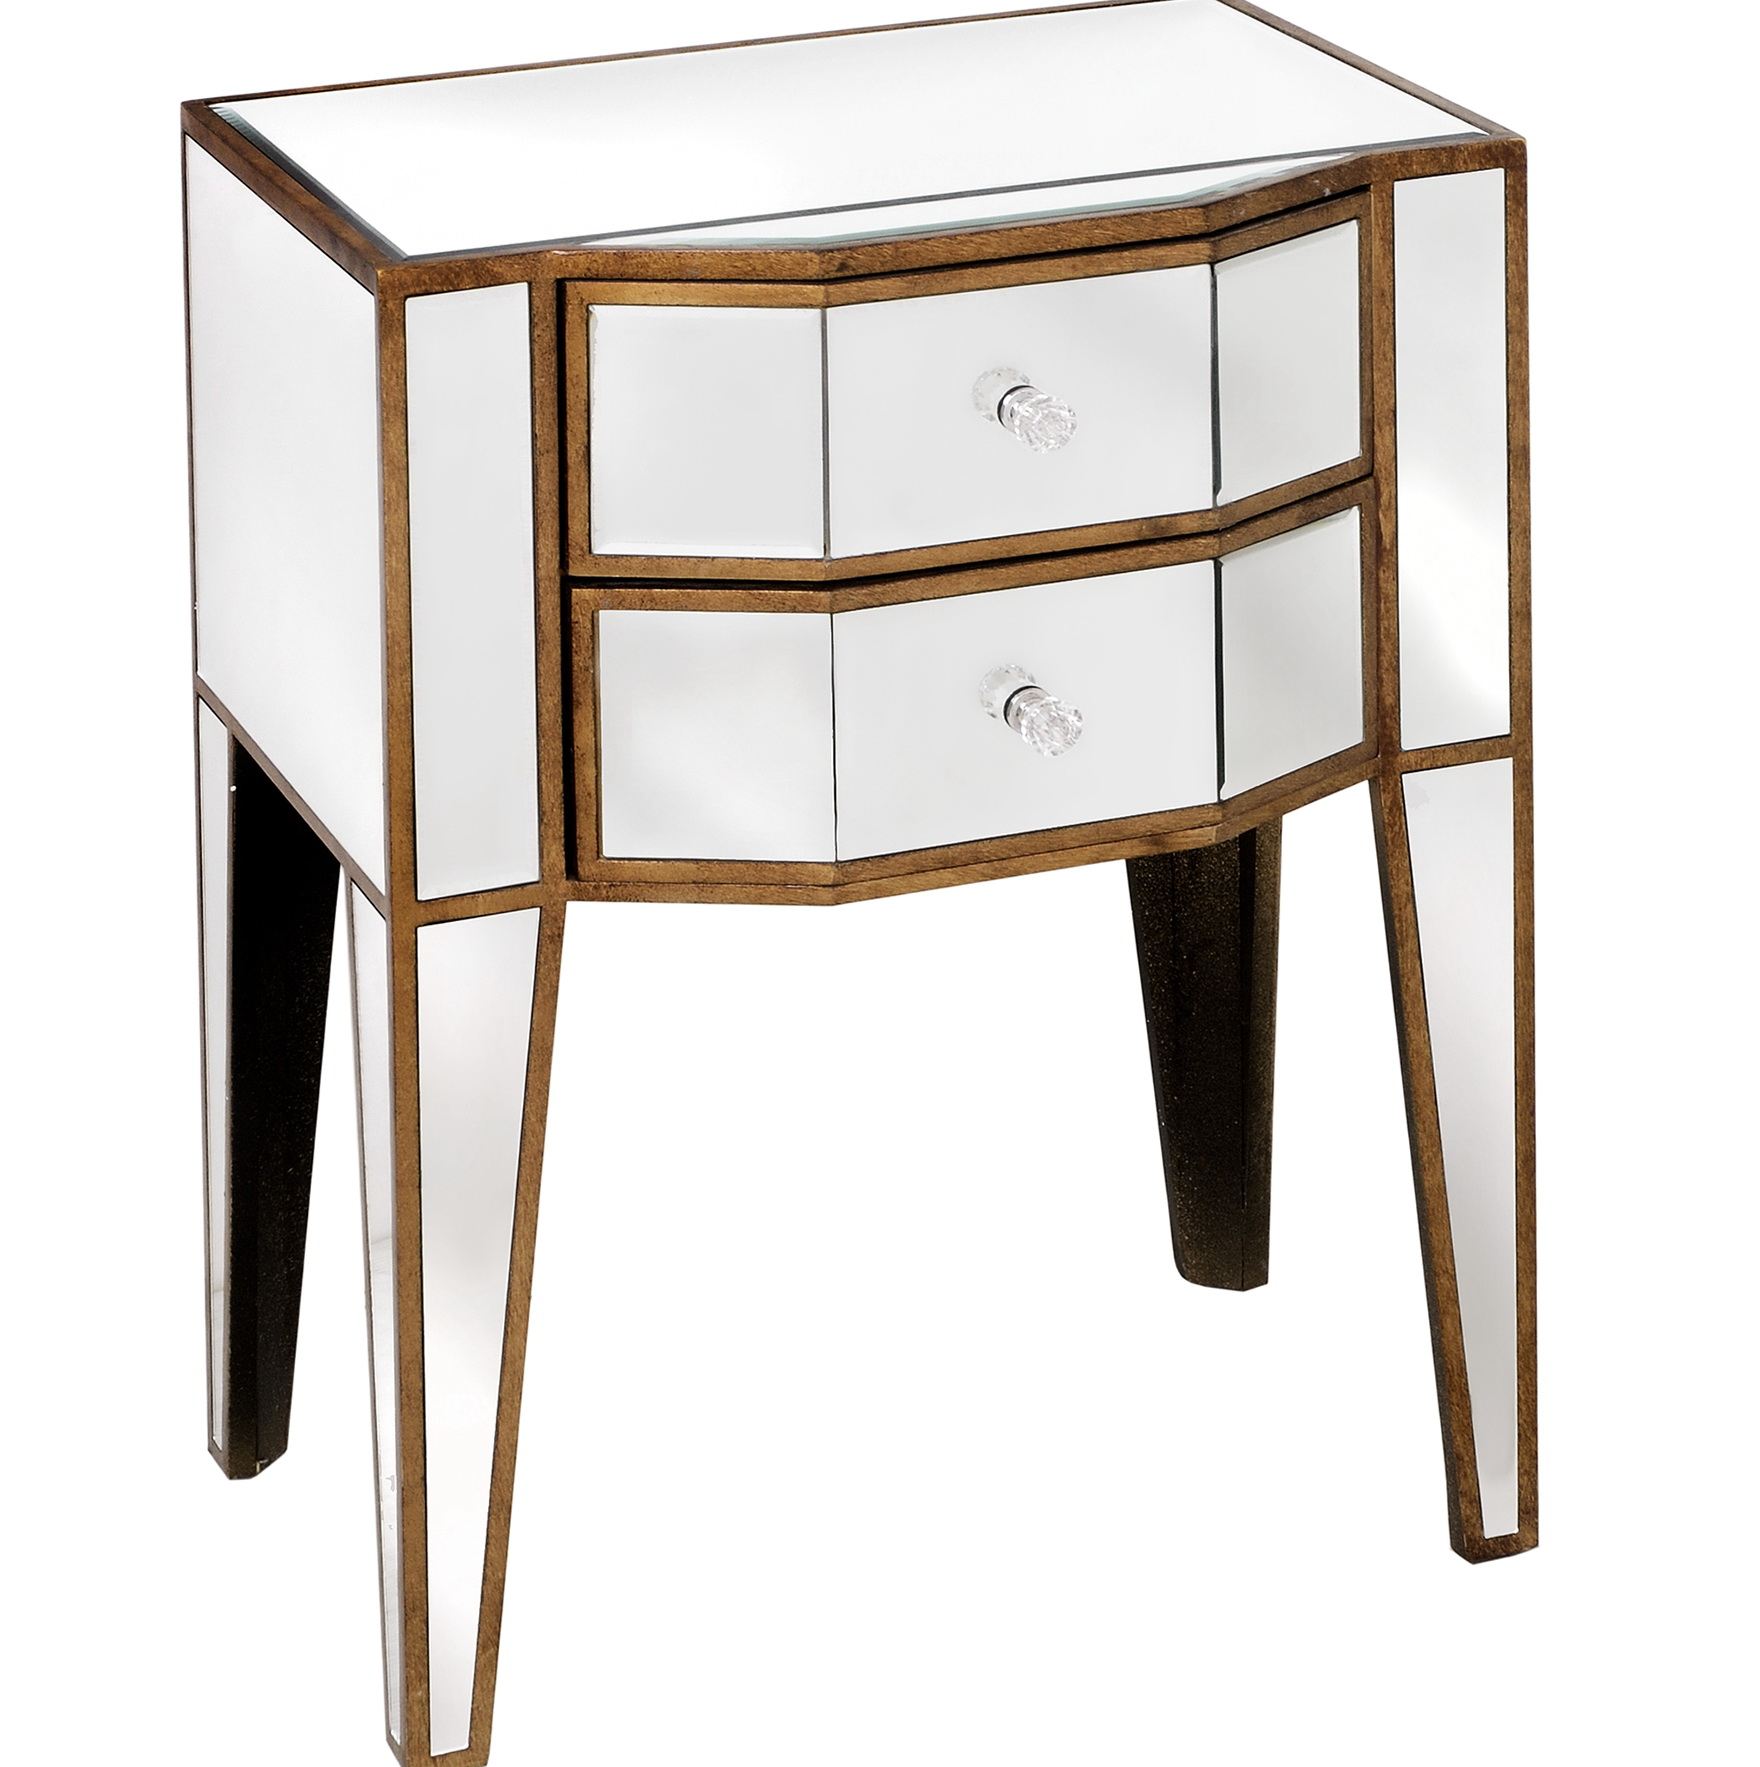 Mirrored Side Tables With Drawers Home Design Ideas